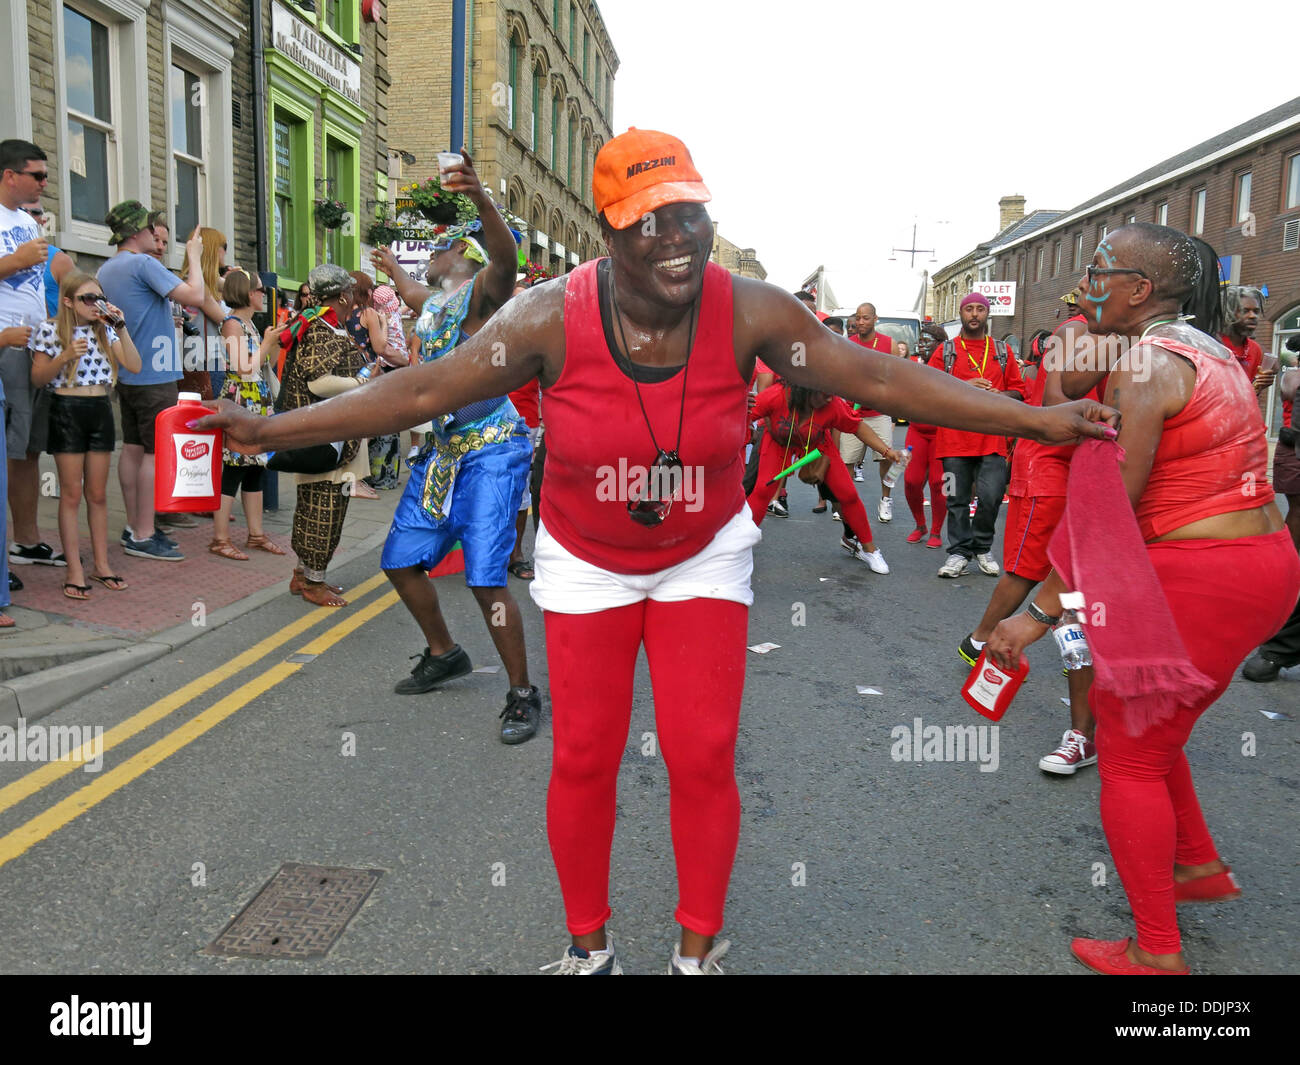 Kirklees,council,local,authority,LA,West,Yorkshire,England,English,UK,GB,Great,Britain,British,town,centre,Saturday,13th,July,event,HACCT,office,African-Caribbean,African,Caribbean,Afro,dancer,dancers,Masqueraders,costume,colourful,Hudawi,trust,diversity,diverse,events,leisure,activities,activity,Gotonysmith,red,sun,sunny,day,summer,center,13/07/2013,Greenhead,Park,Afro-Caribbean,costumes,colorful,culture,cultural,streets,parades,jab,jabs,jab-jabs,St,Johns,Rd,from,Willow,Lane,to,John,William,St,Johns,Rd,Market,Place,Cloth,Hall,St,from,Market,Place,to,St,from,Cloth,Hall,St,to,Westgate,from,to,Trinity,St,johns,Yorks,WestYorks,HD11NU,1NU,Buy Pictures of,Buy Images Of